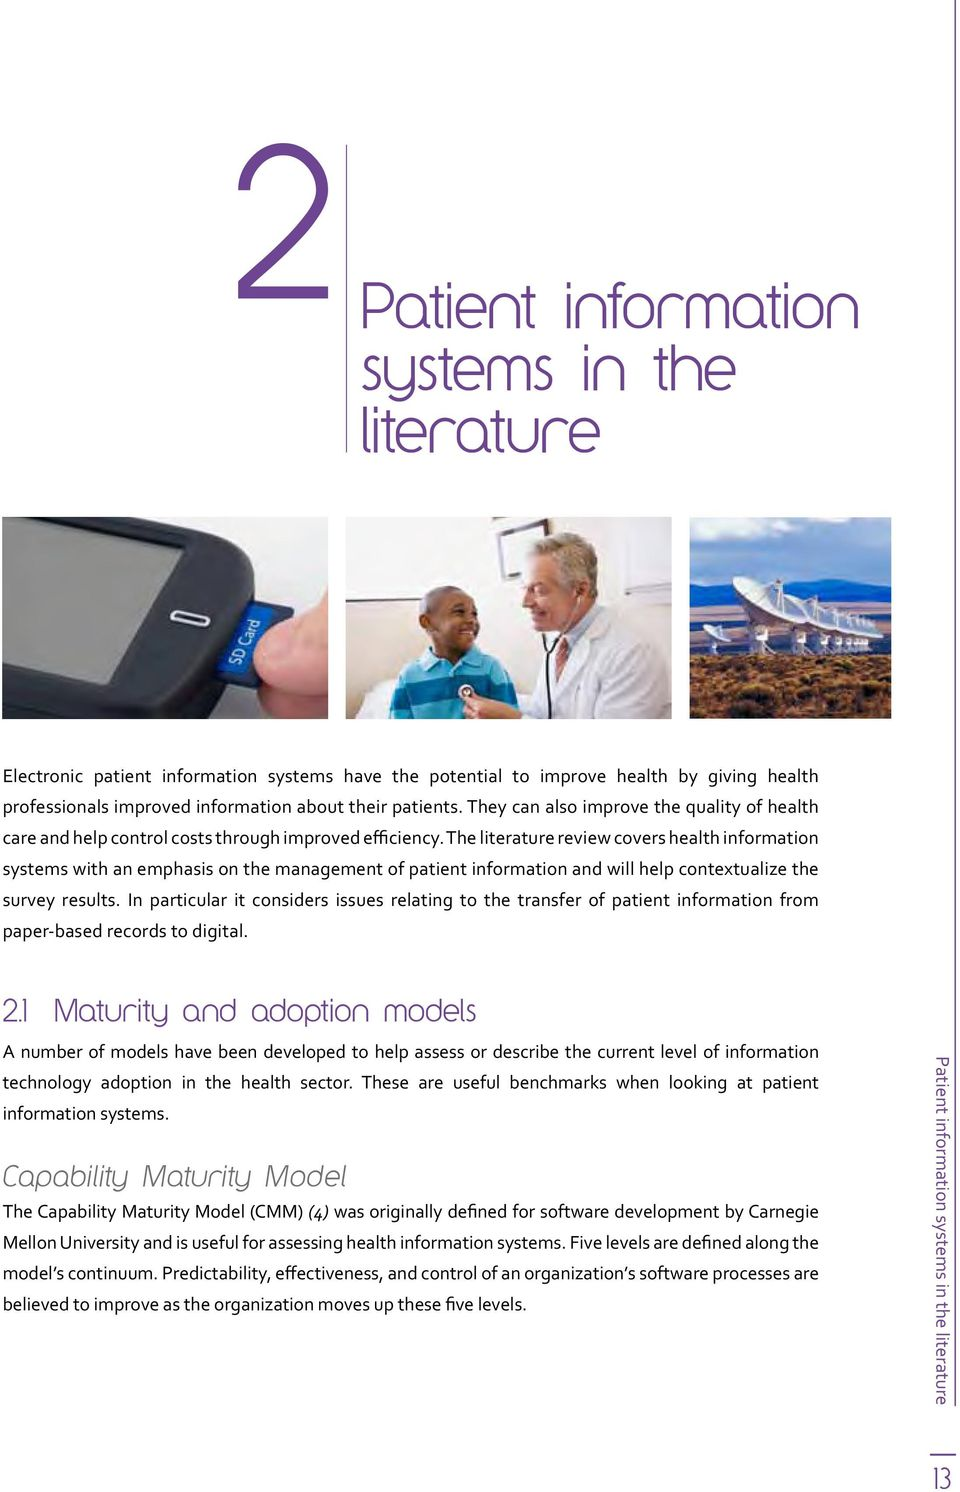 The literature review covers health information systems with an emphasis on the management of patient information and will help contextualize the survey results.